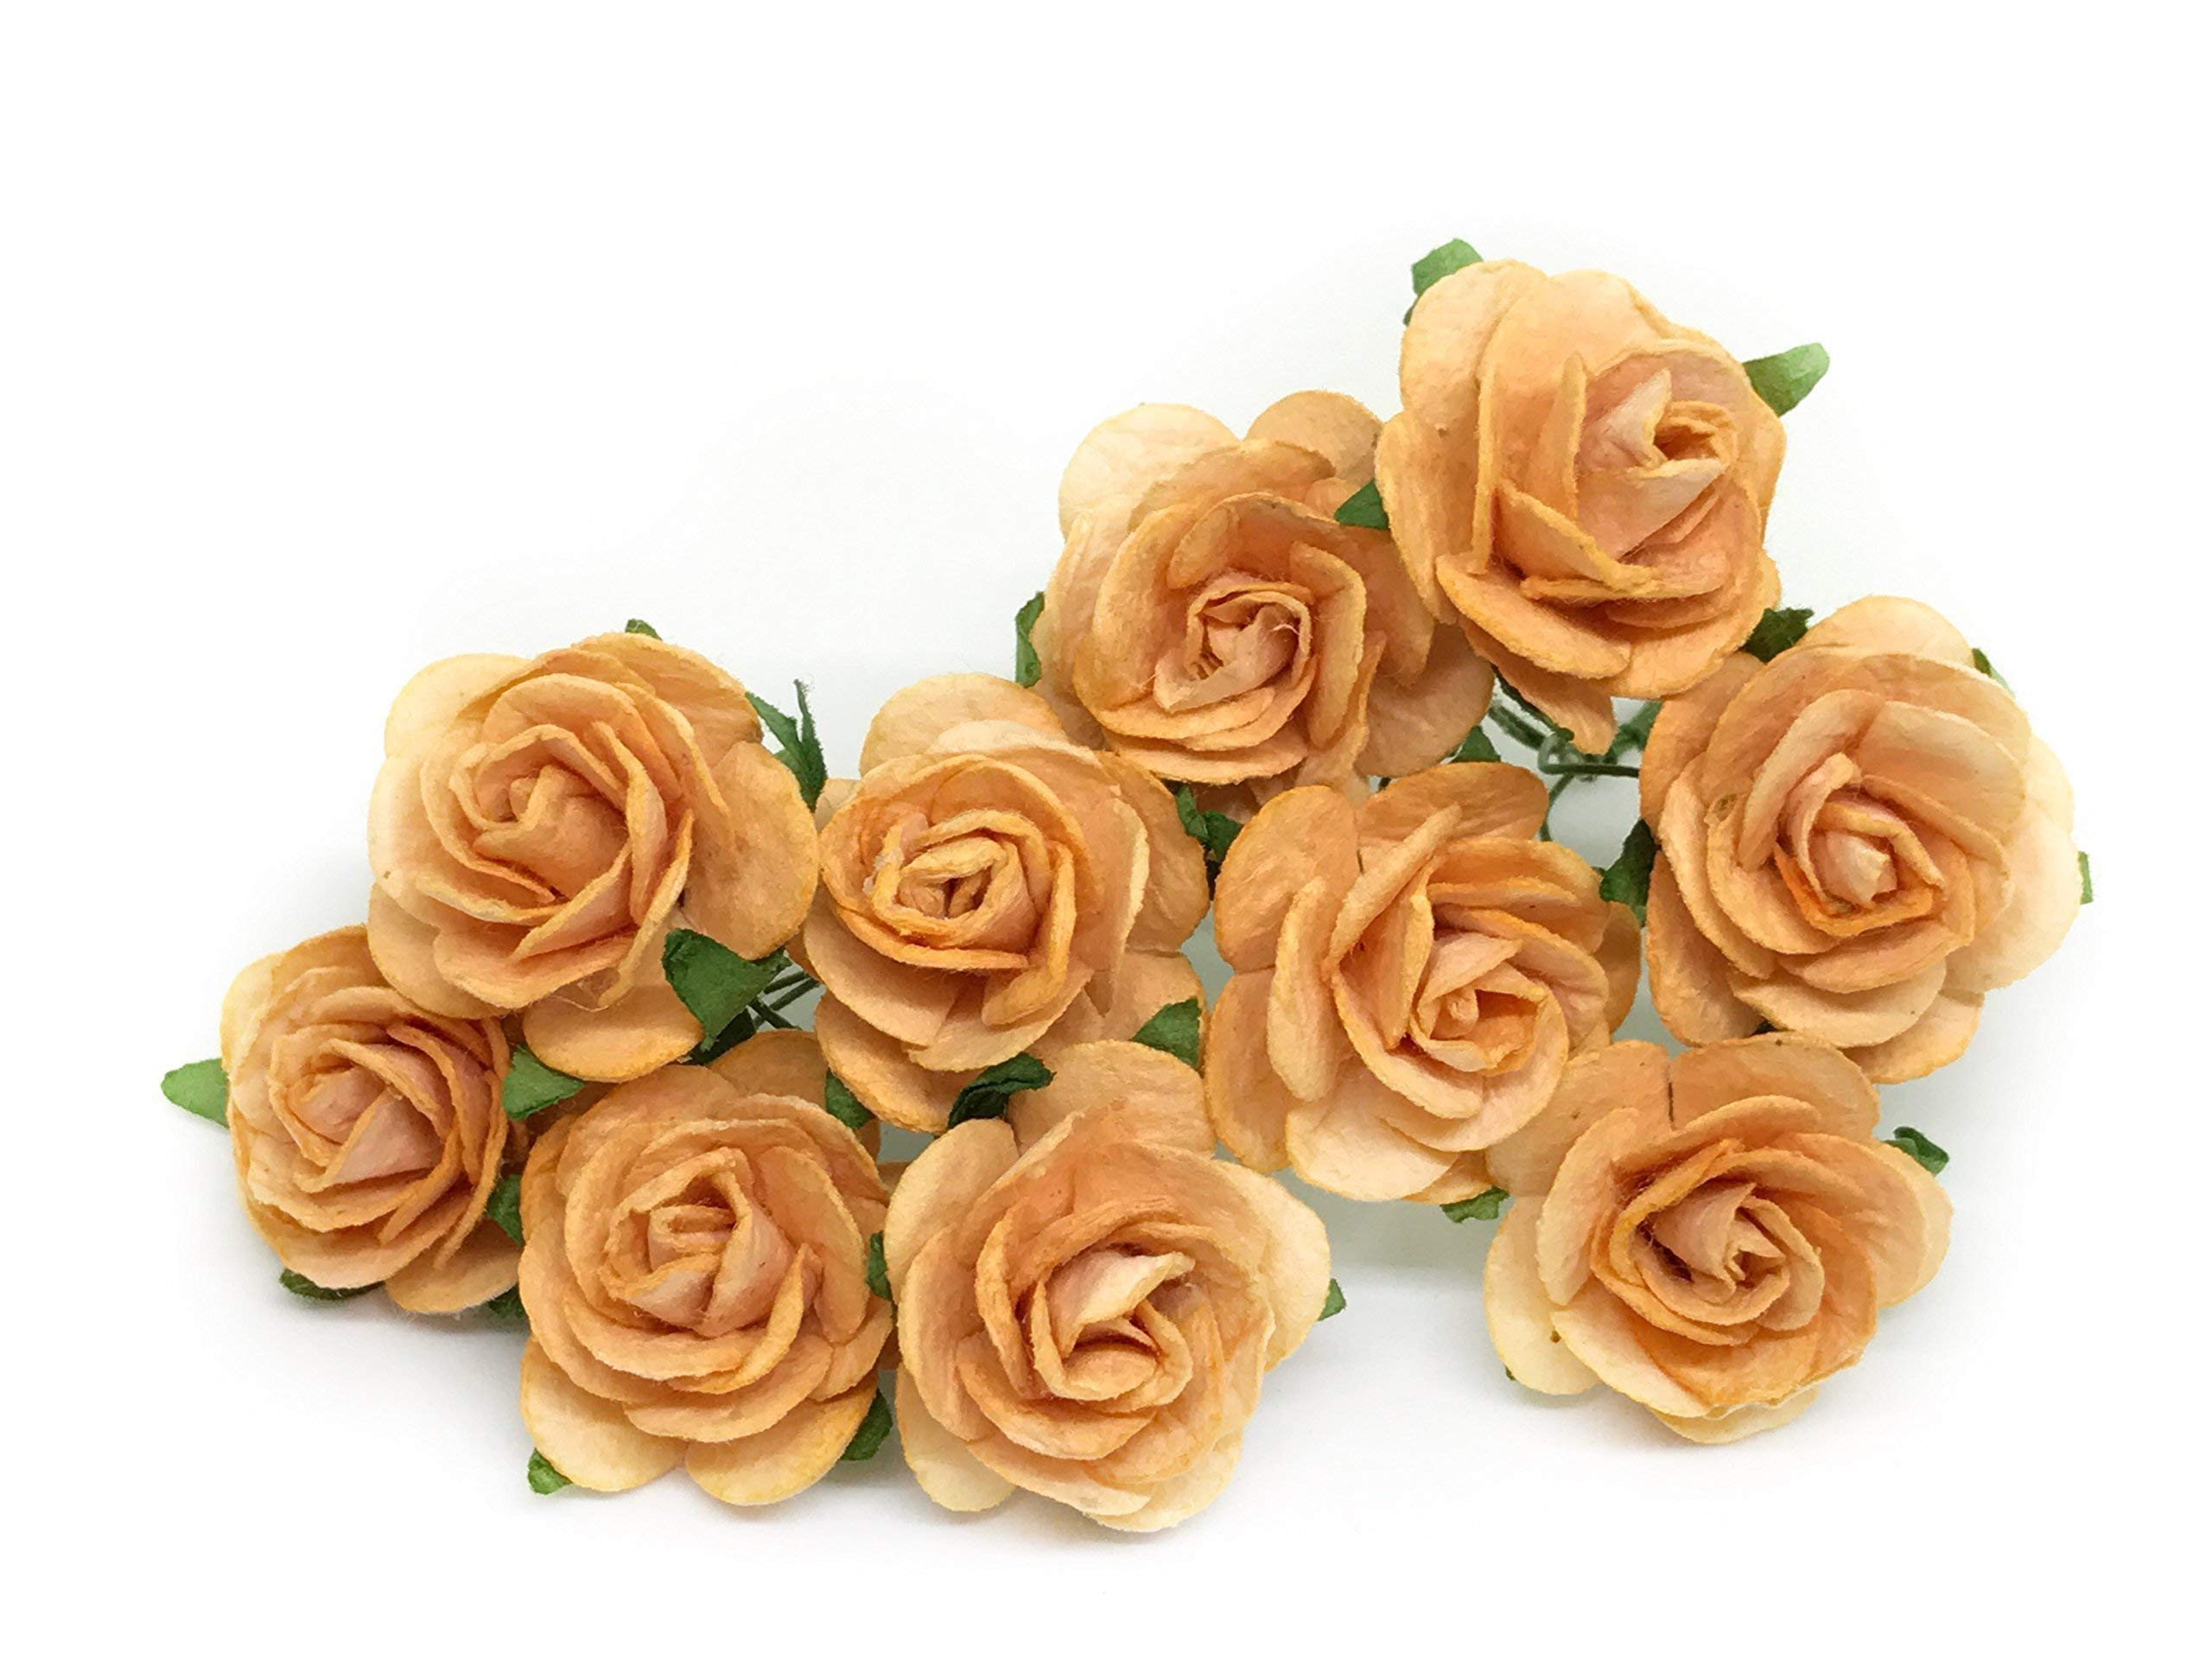 1-Orange-Paper-Flowers-Paper-Rose-Artificial-Flowers-Fake-Flowers-Artificial-Roses-Paper-Craft-Flowers-Paper-Rose-Flower-Mulberry-Paper-Flowers-20-Pieces